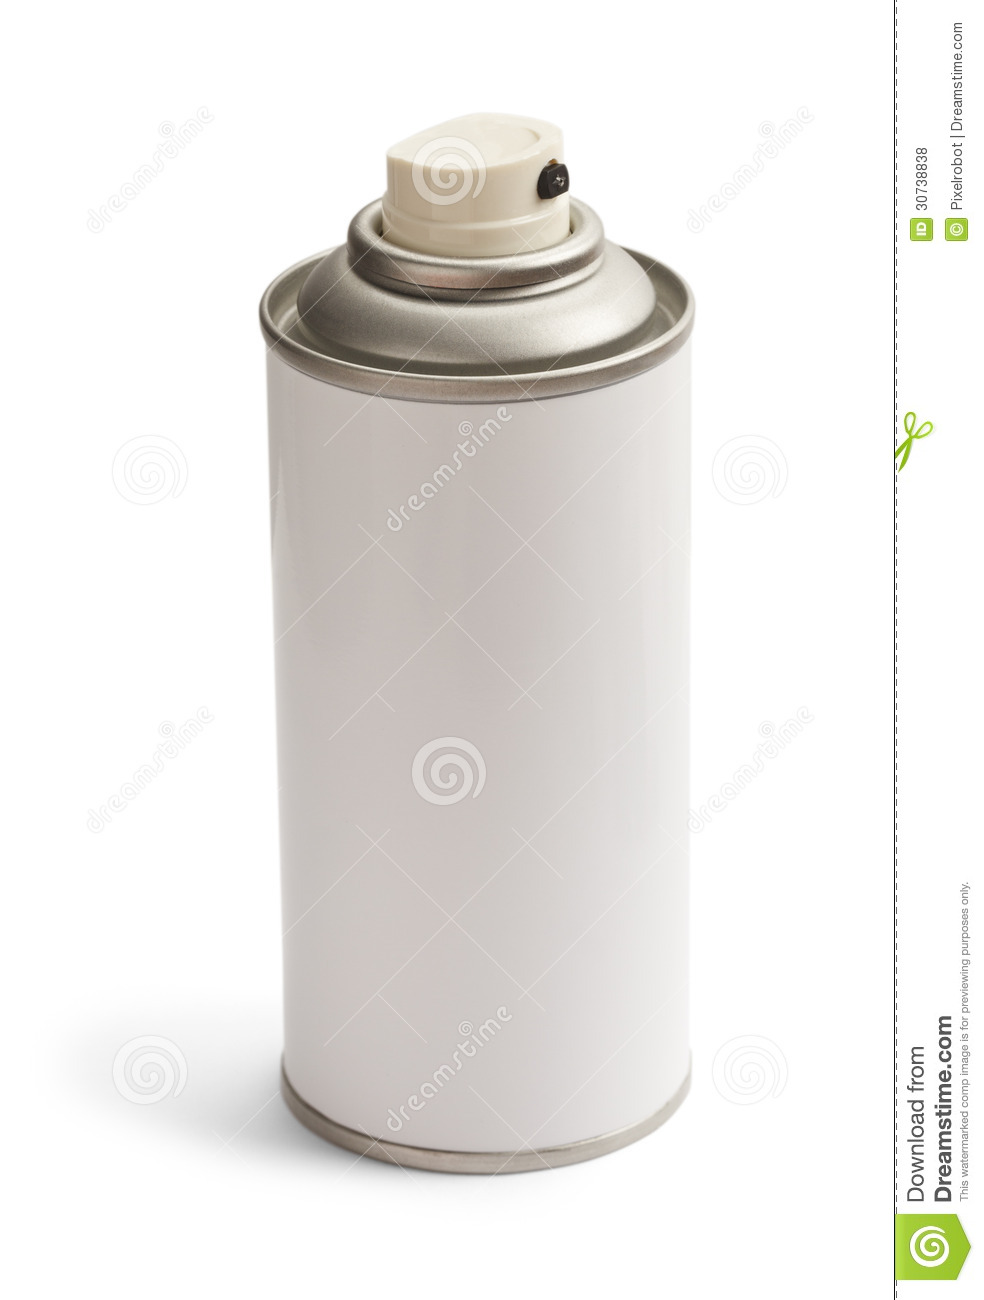 spray paint can royalty free stock photos image 30738838